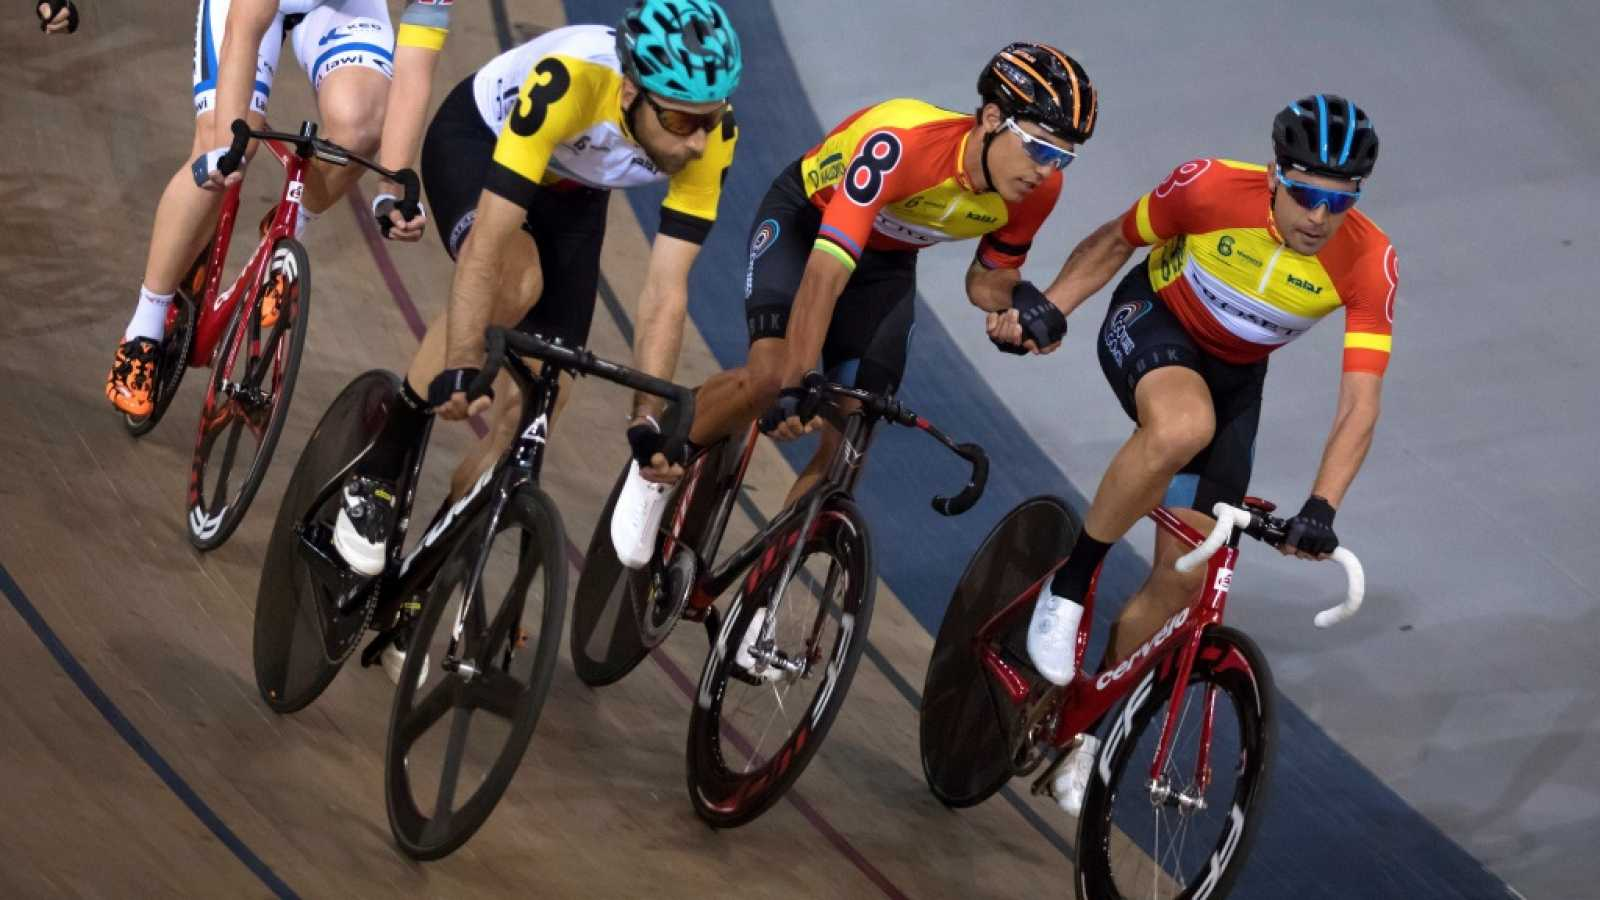 Ciclismo en Pista - Final 'Six Days Series' 2018